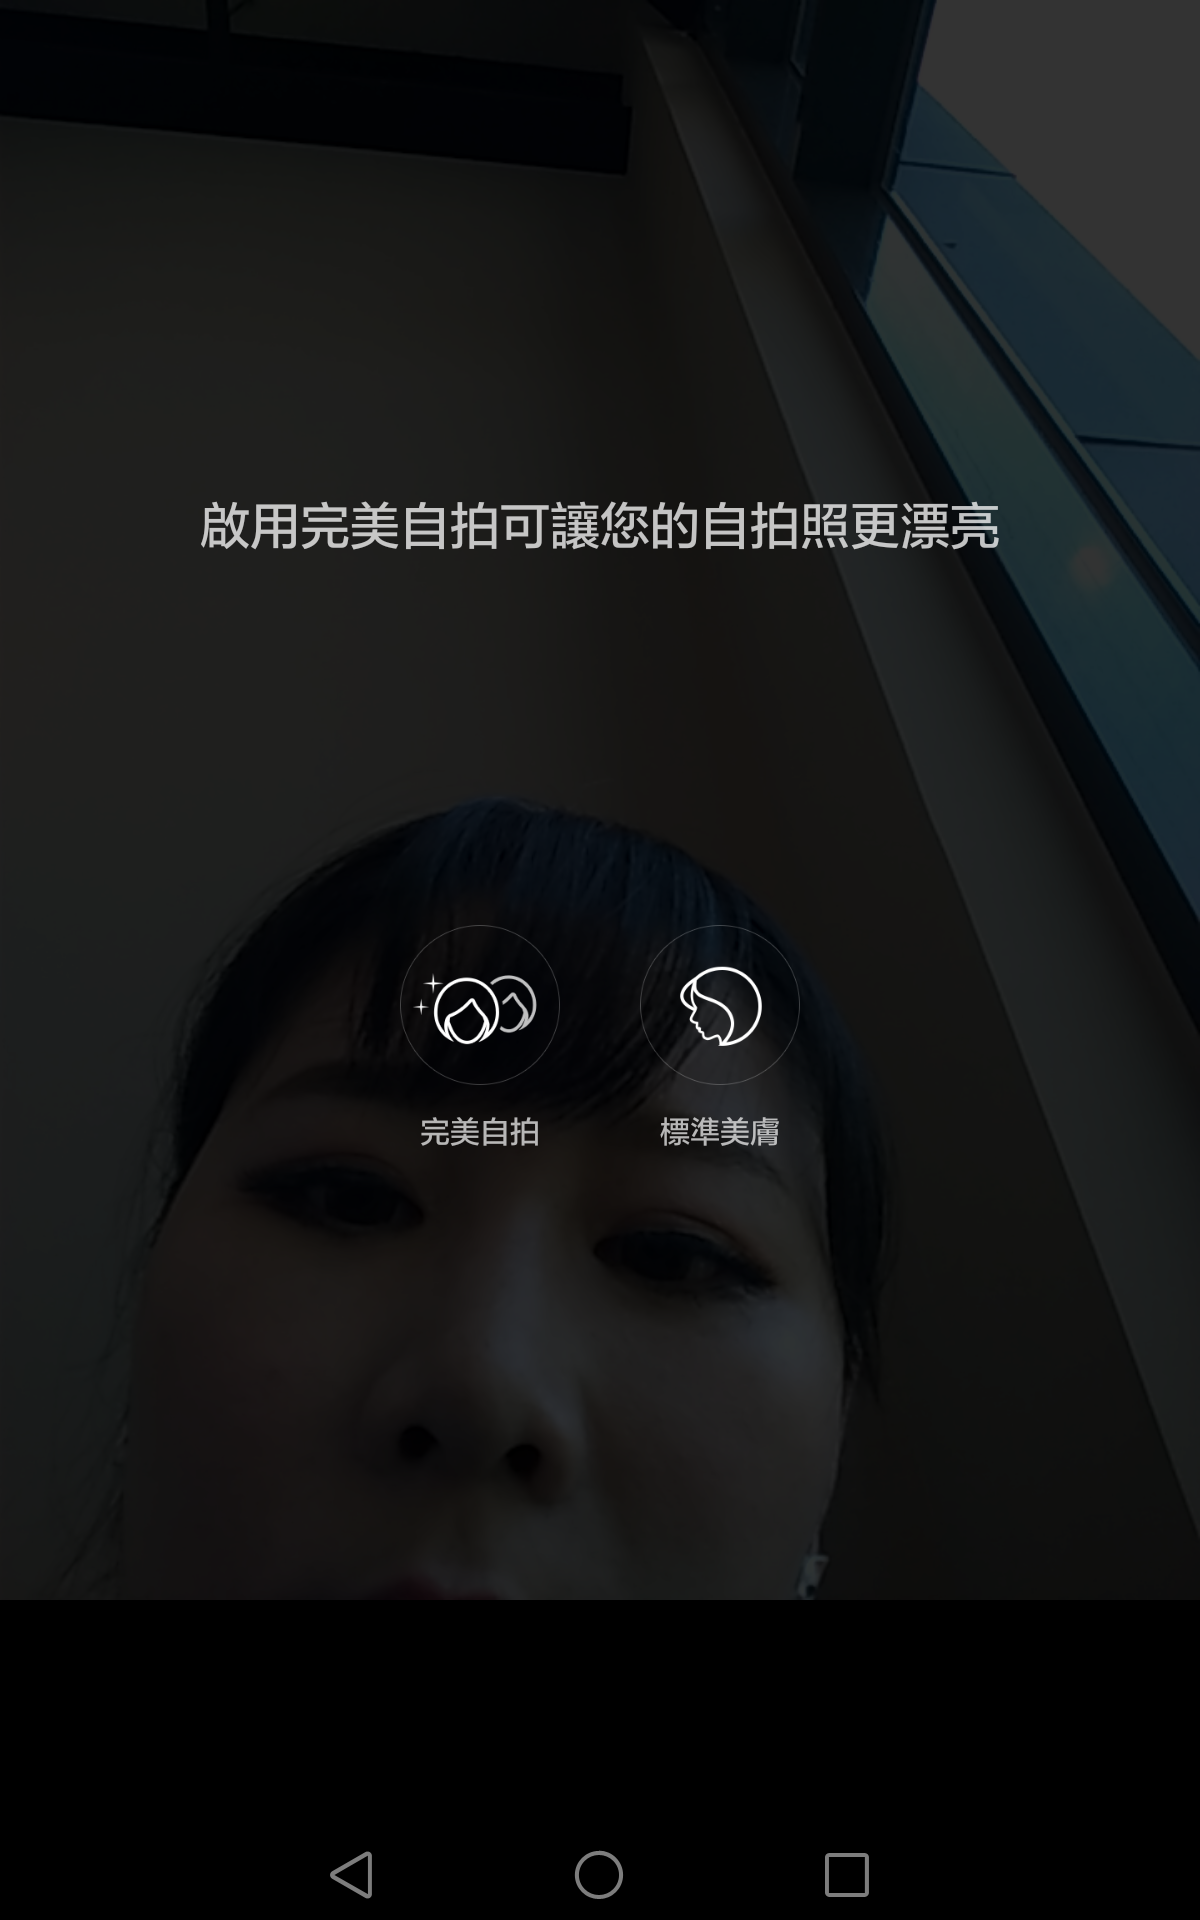 Screenshot_2016-09-26-02-45-07.png